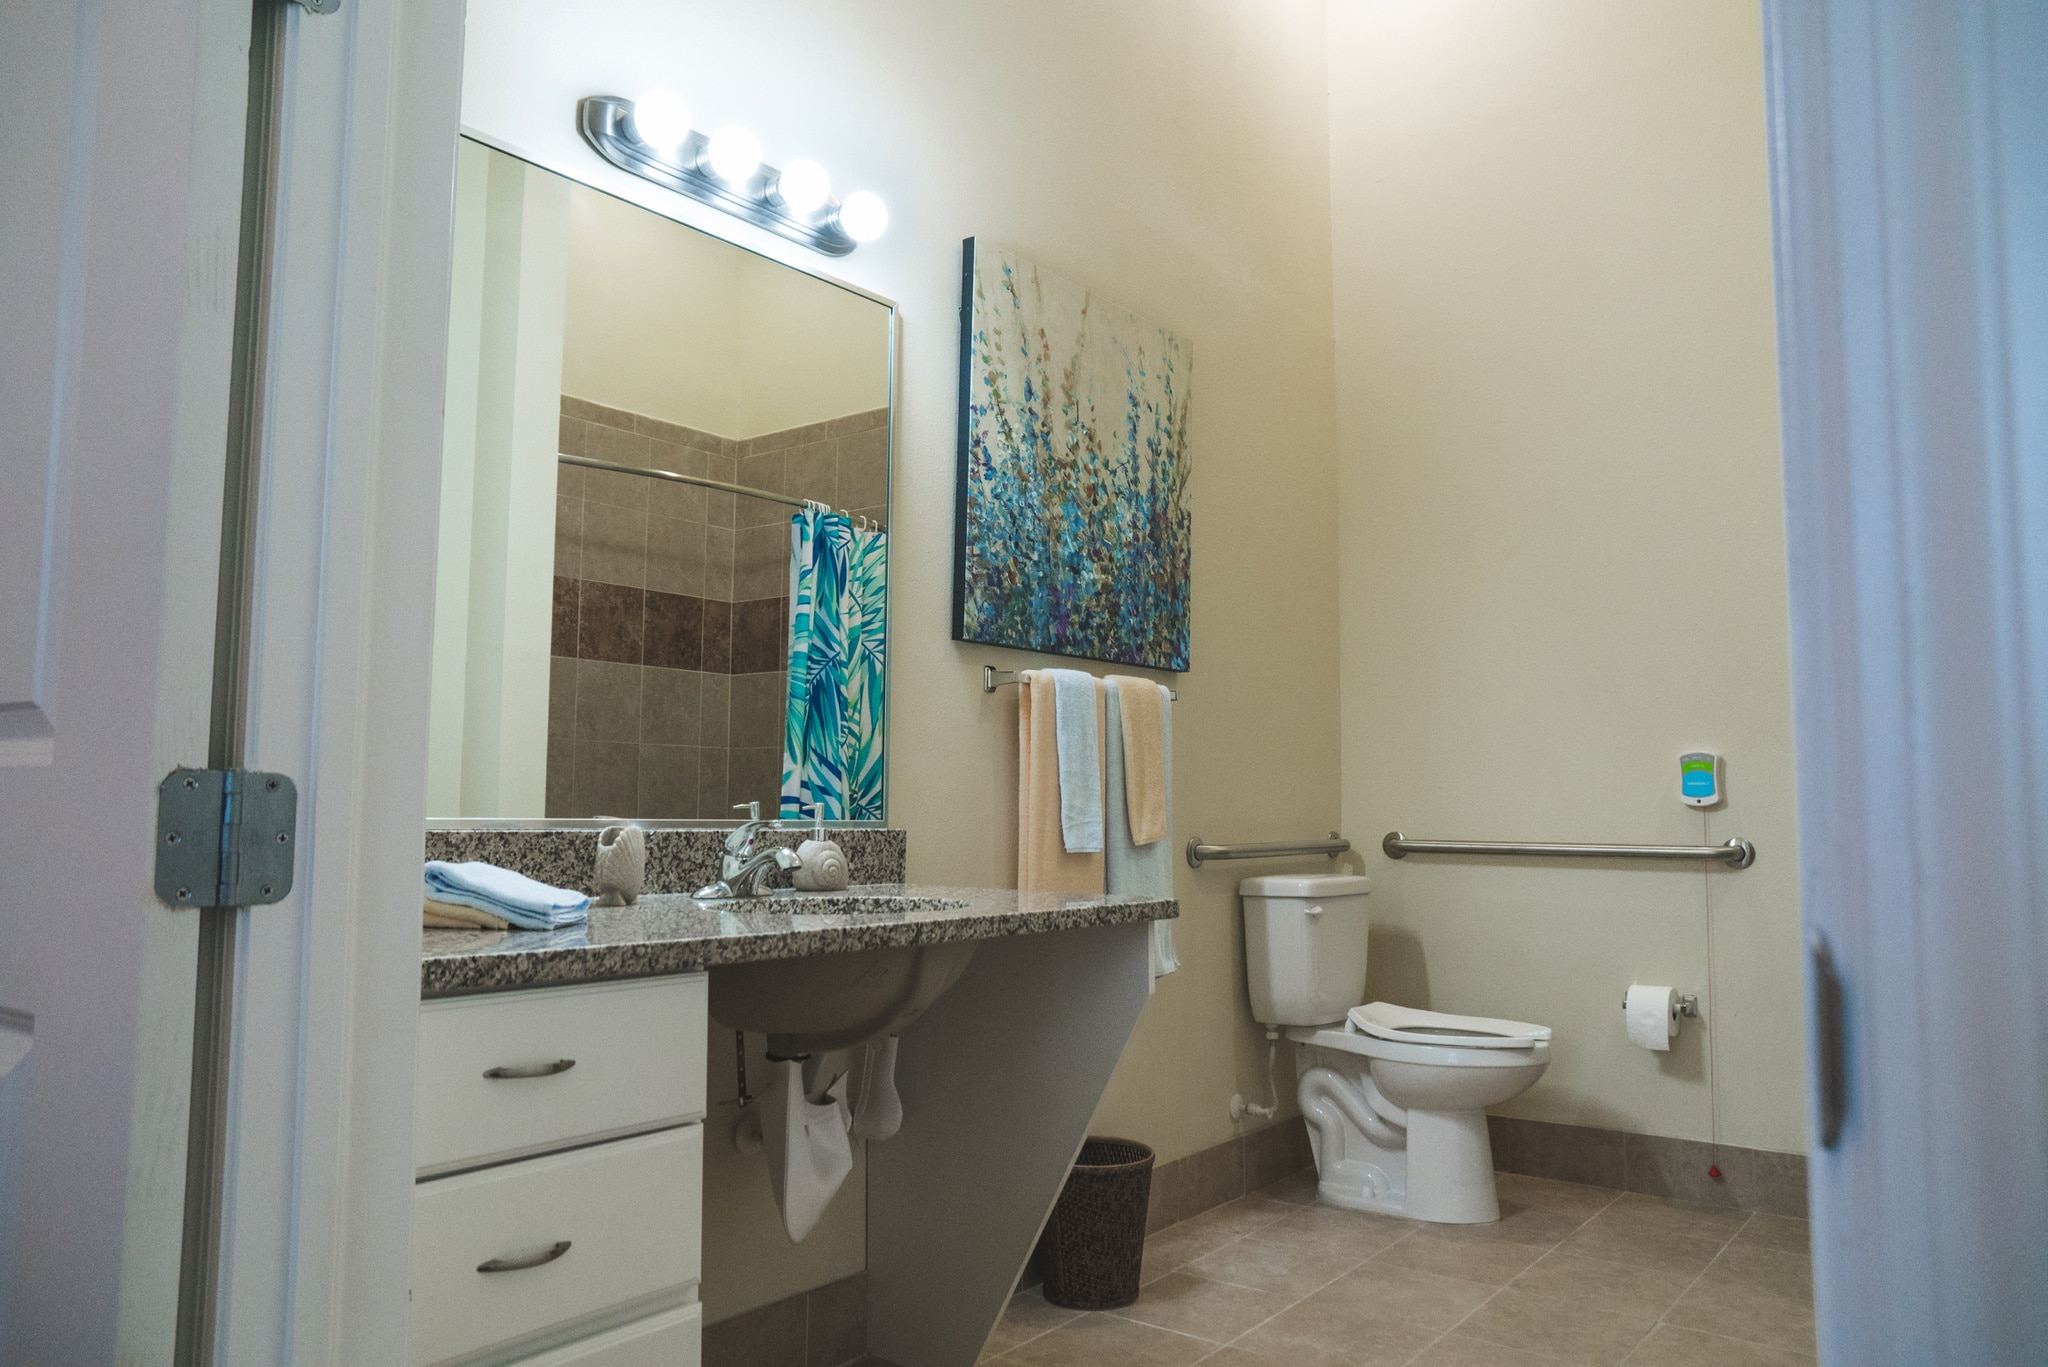 This model bathroom offers a look into our community's beach decor, granite countertops, and more to help our residents feel at home.